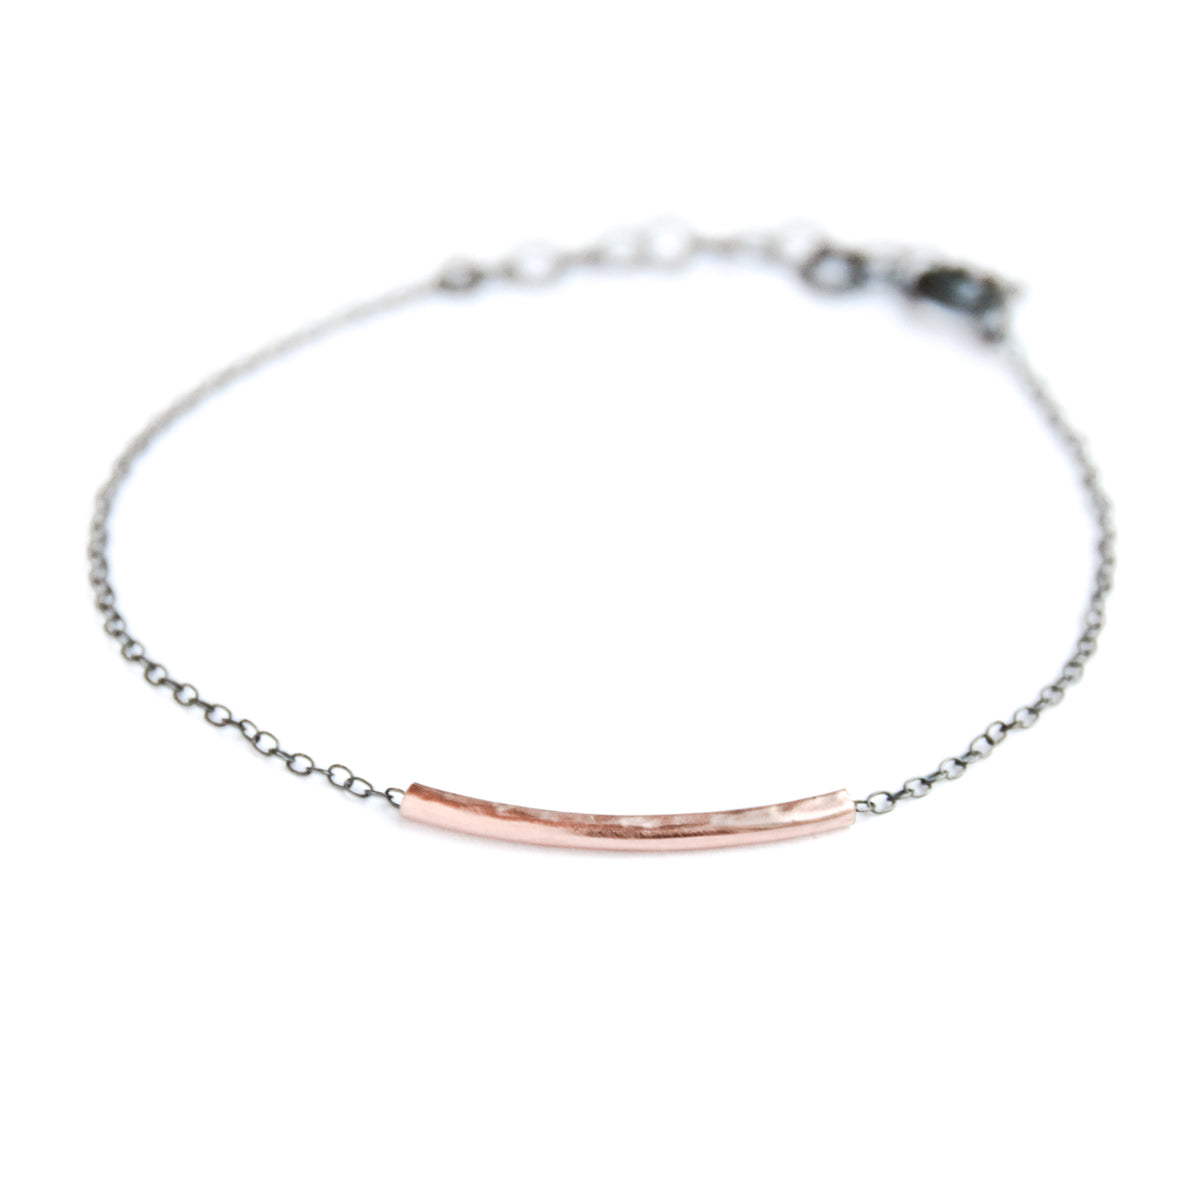 Space Tunnel Bracelet - 14K Rose Gold-Filled